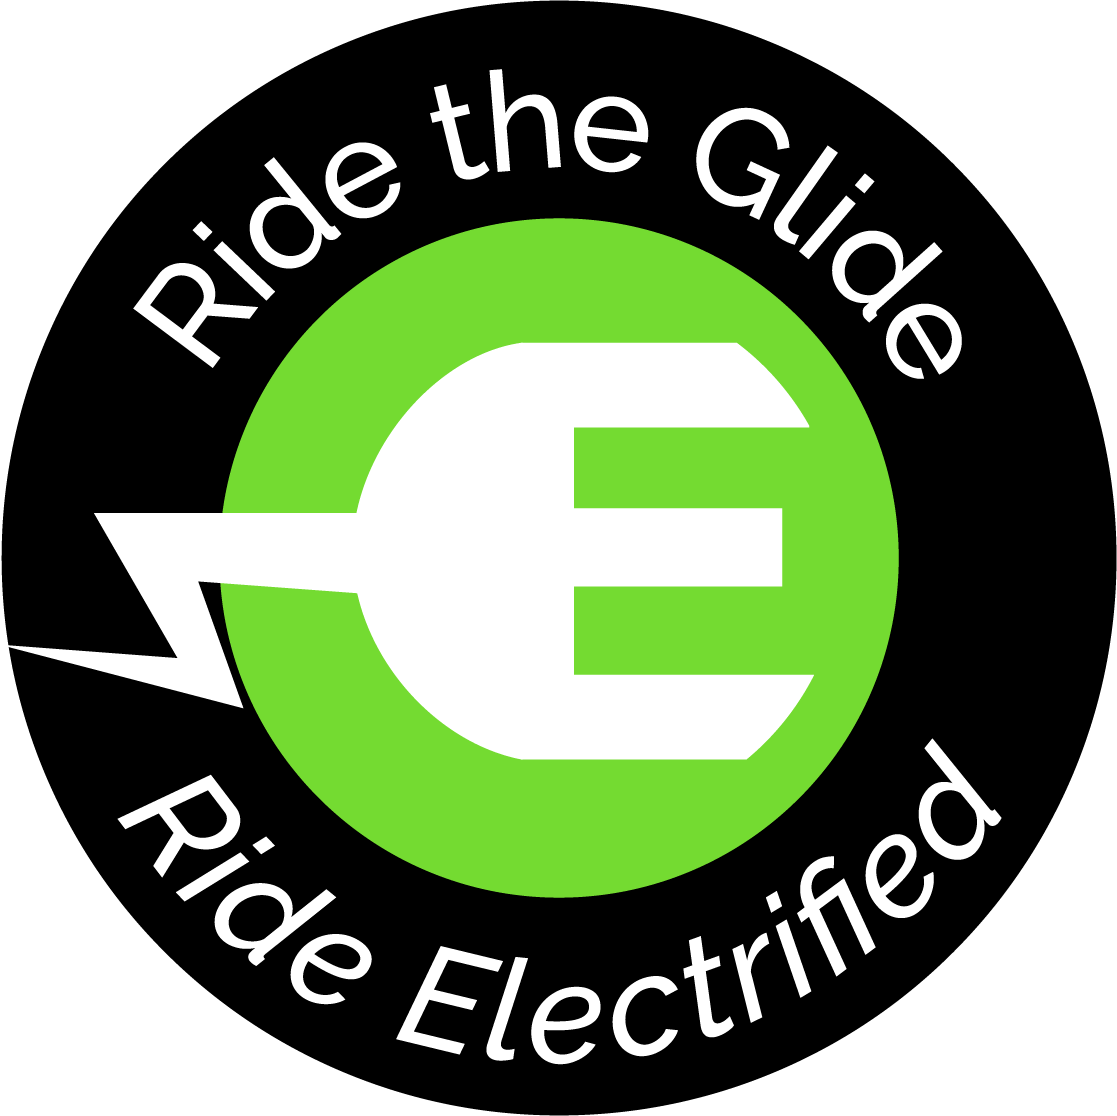 Ride the Glide - Ride Electrified